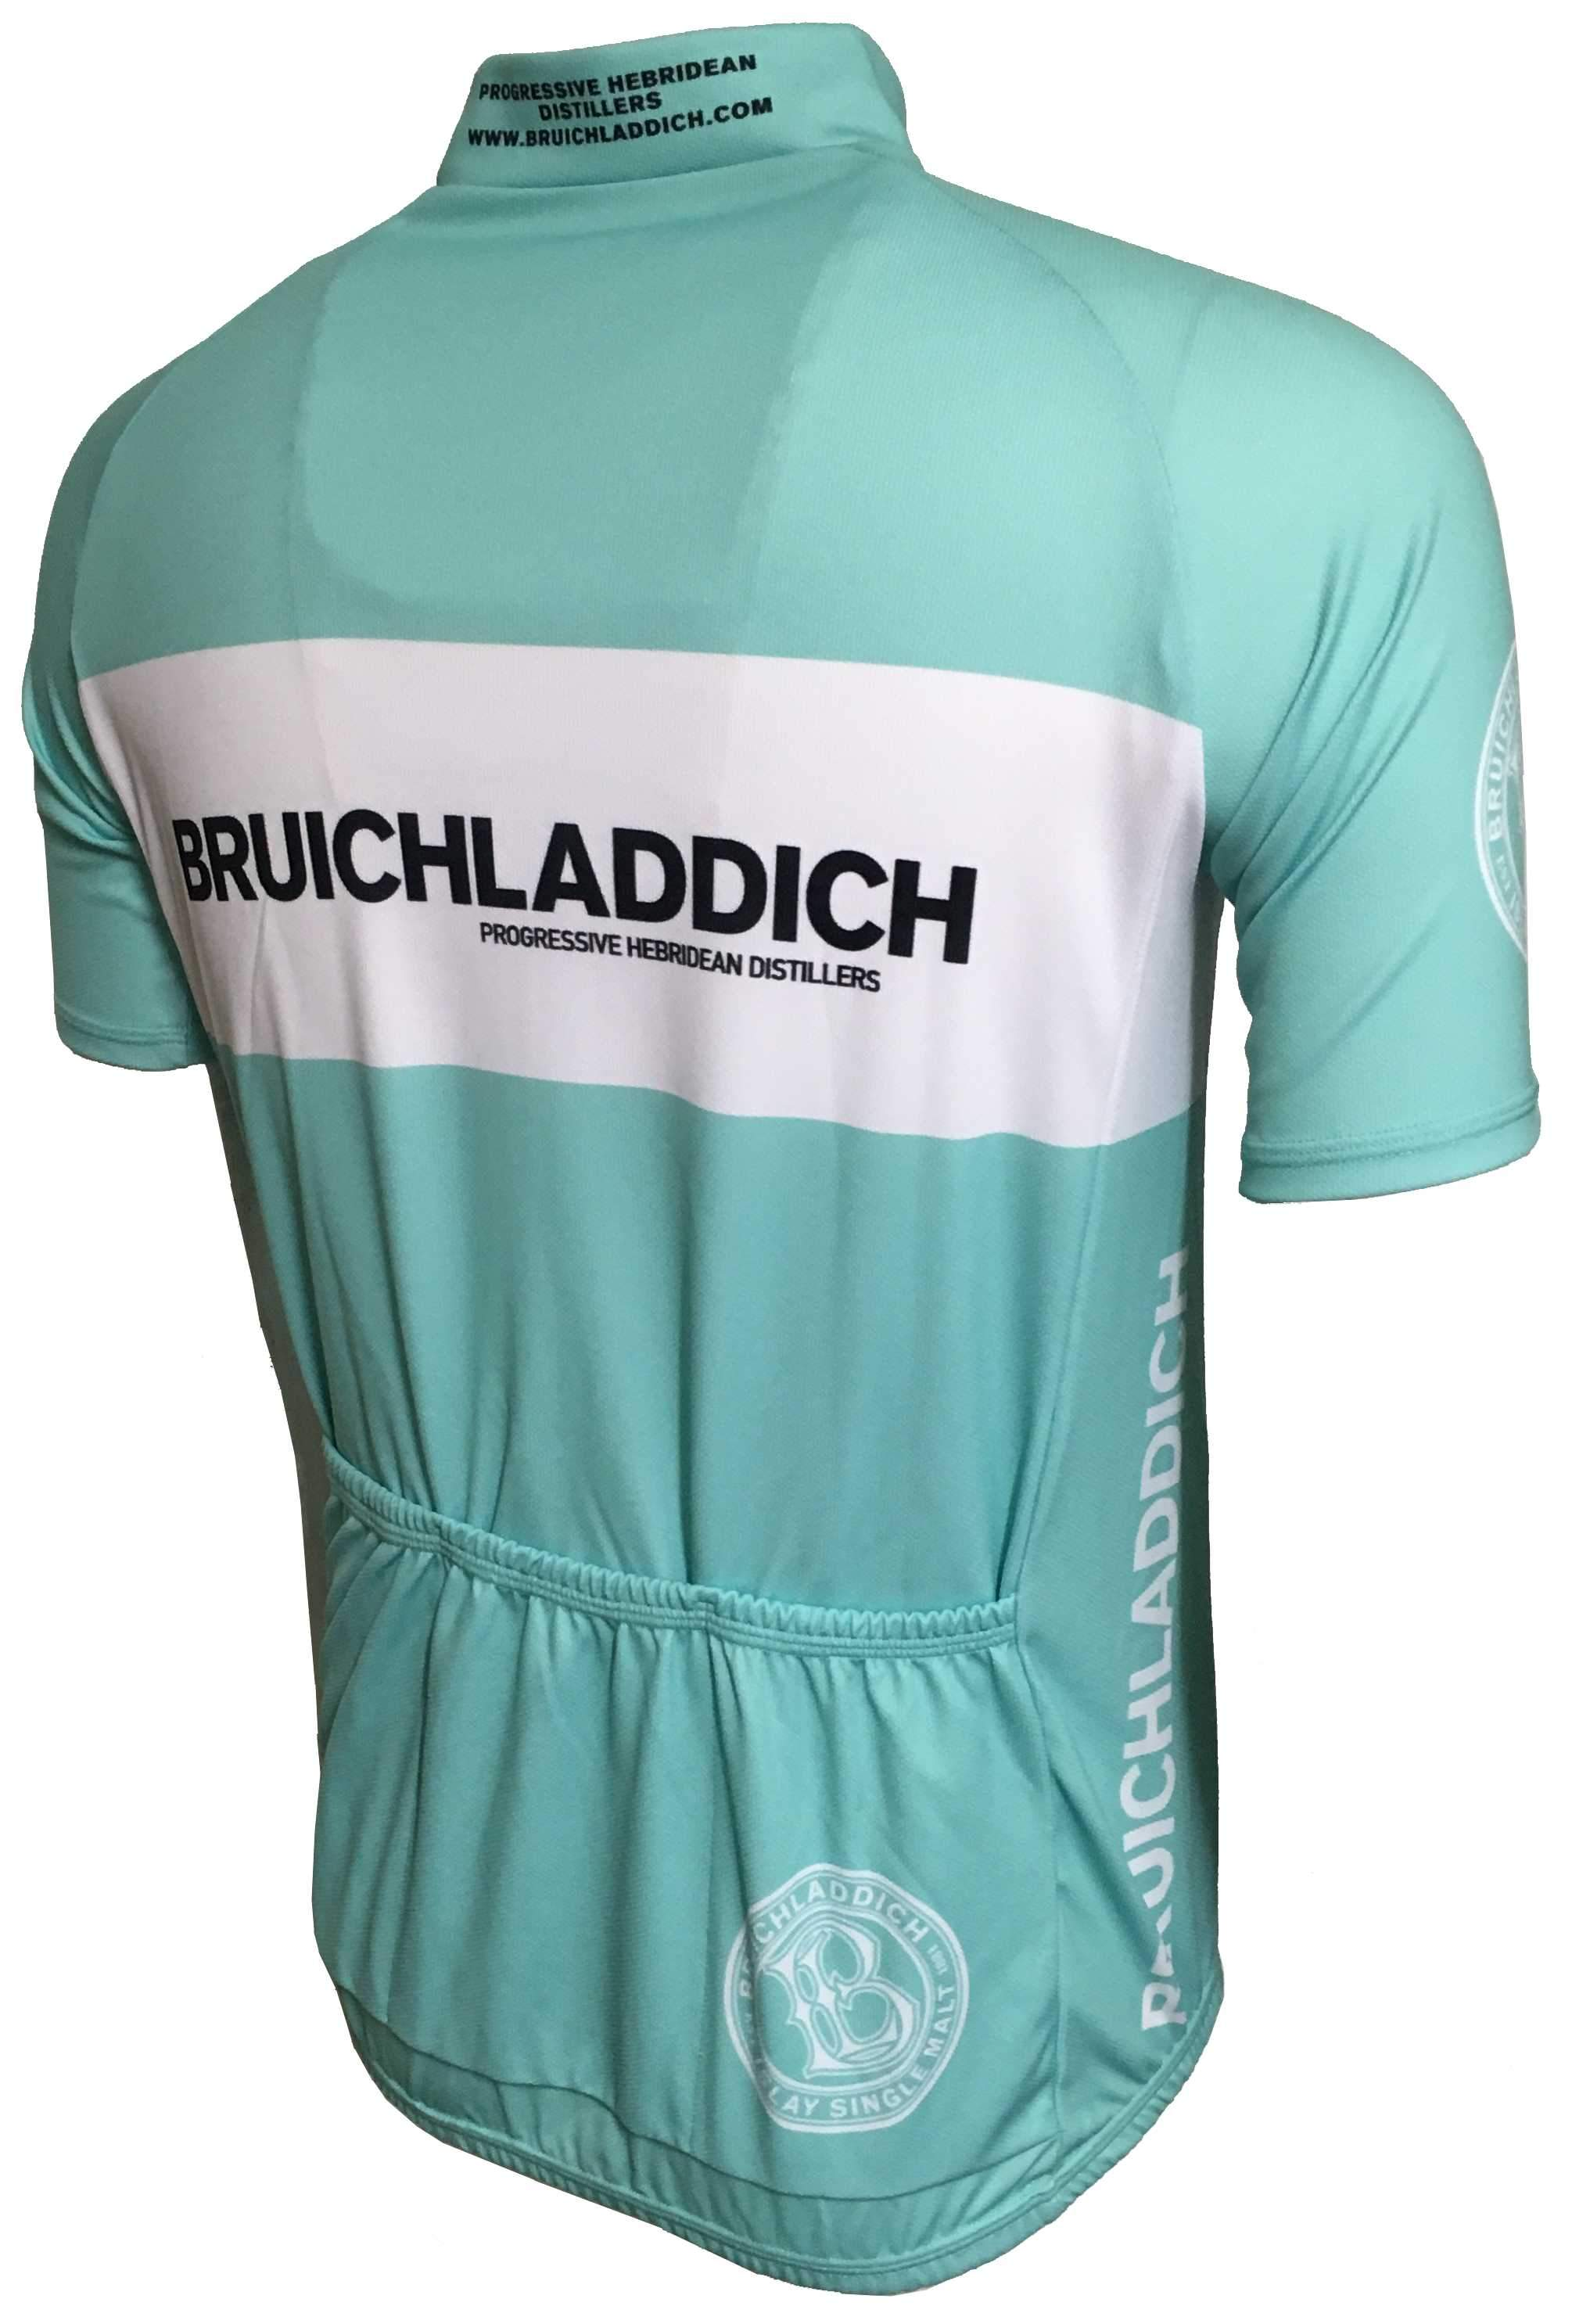 Bruichladdich Retro Cycling Jersey Back